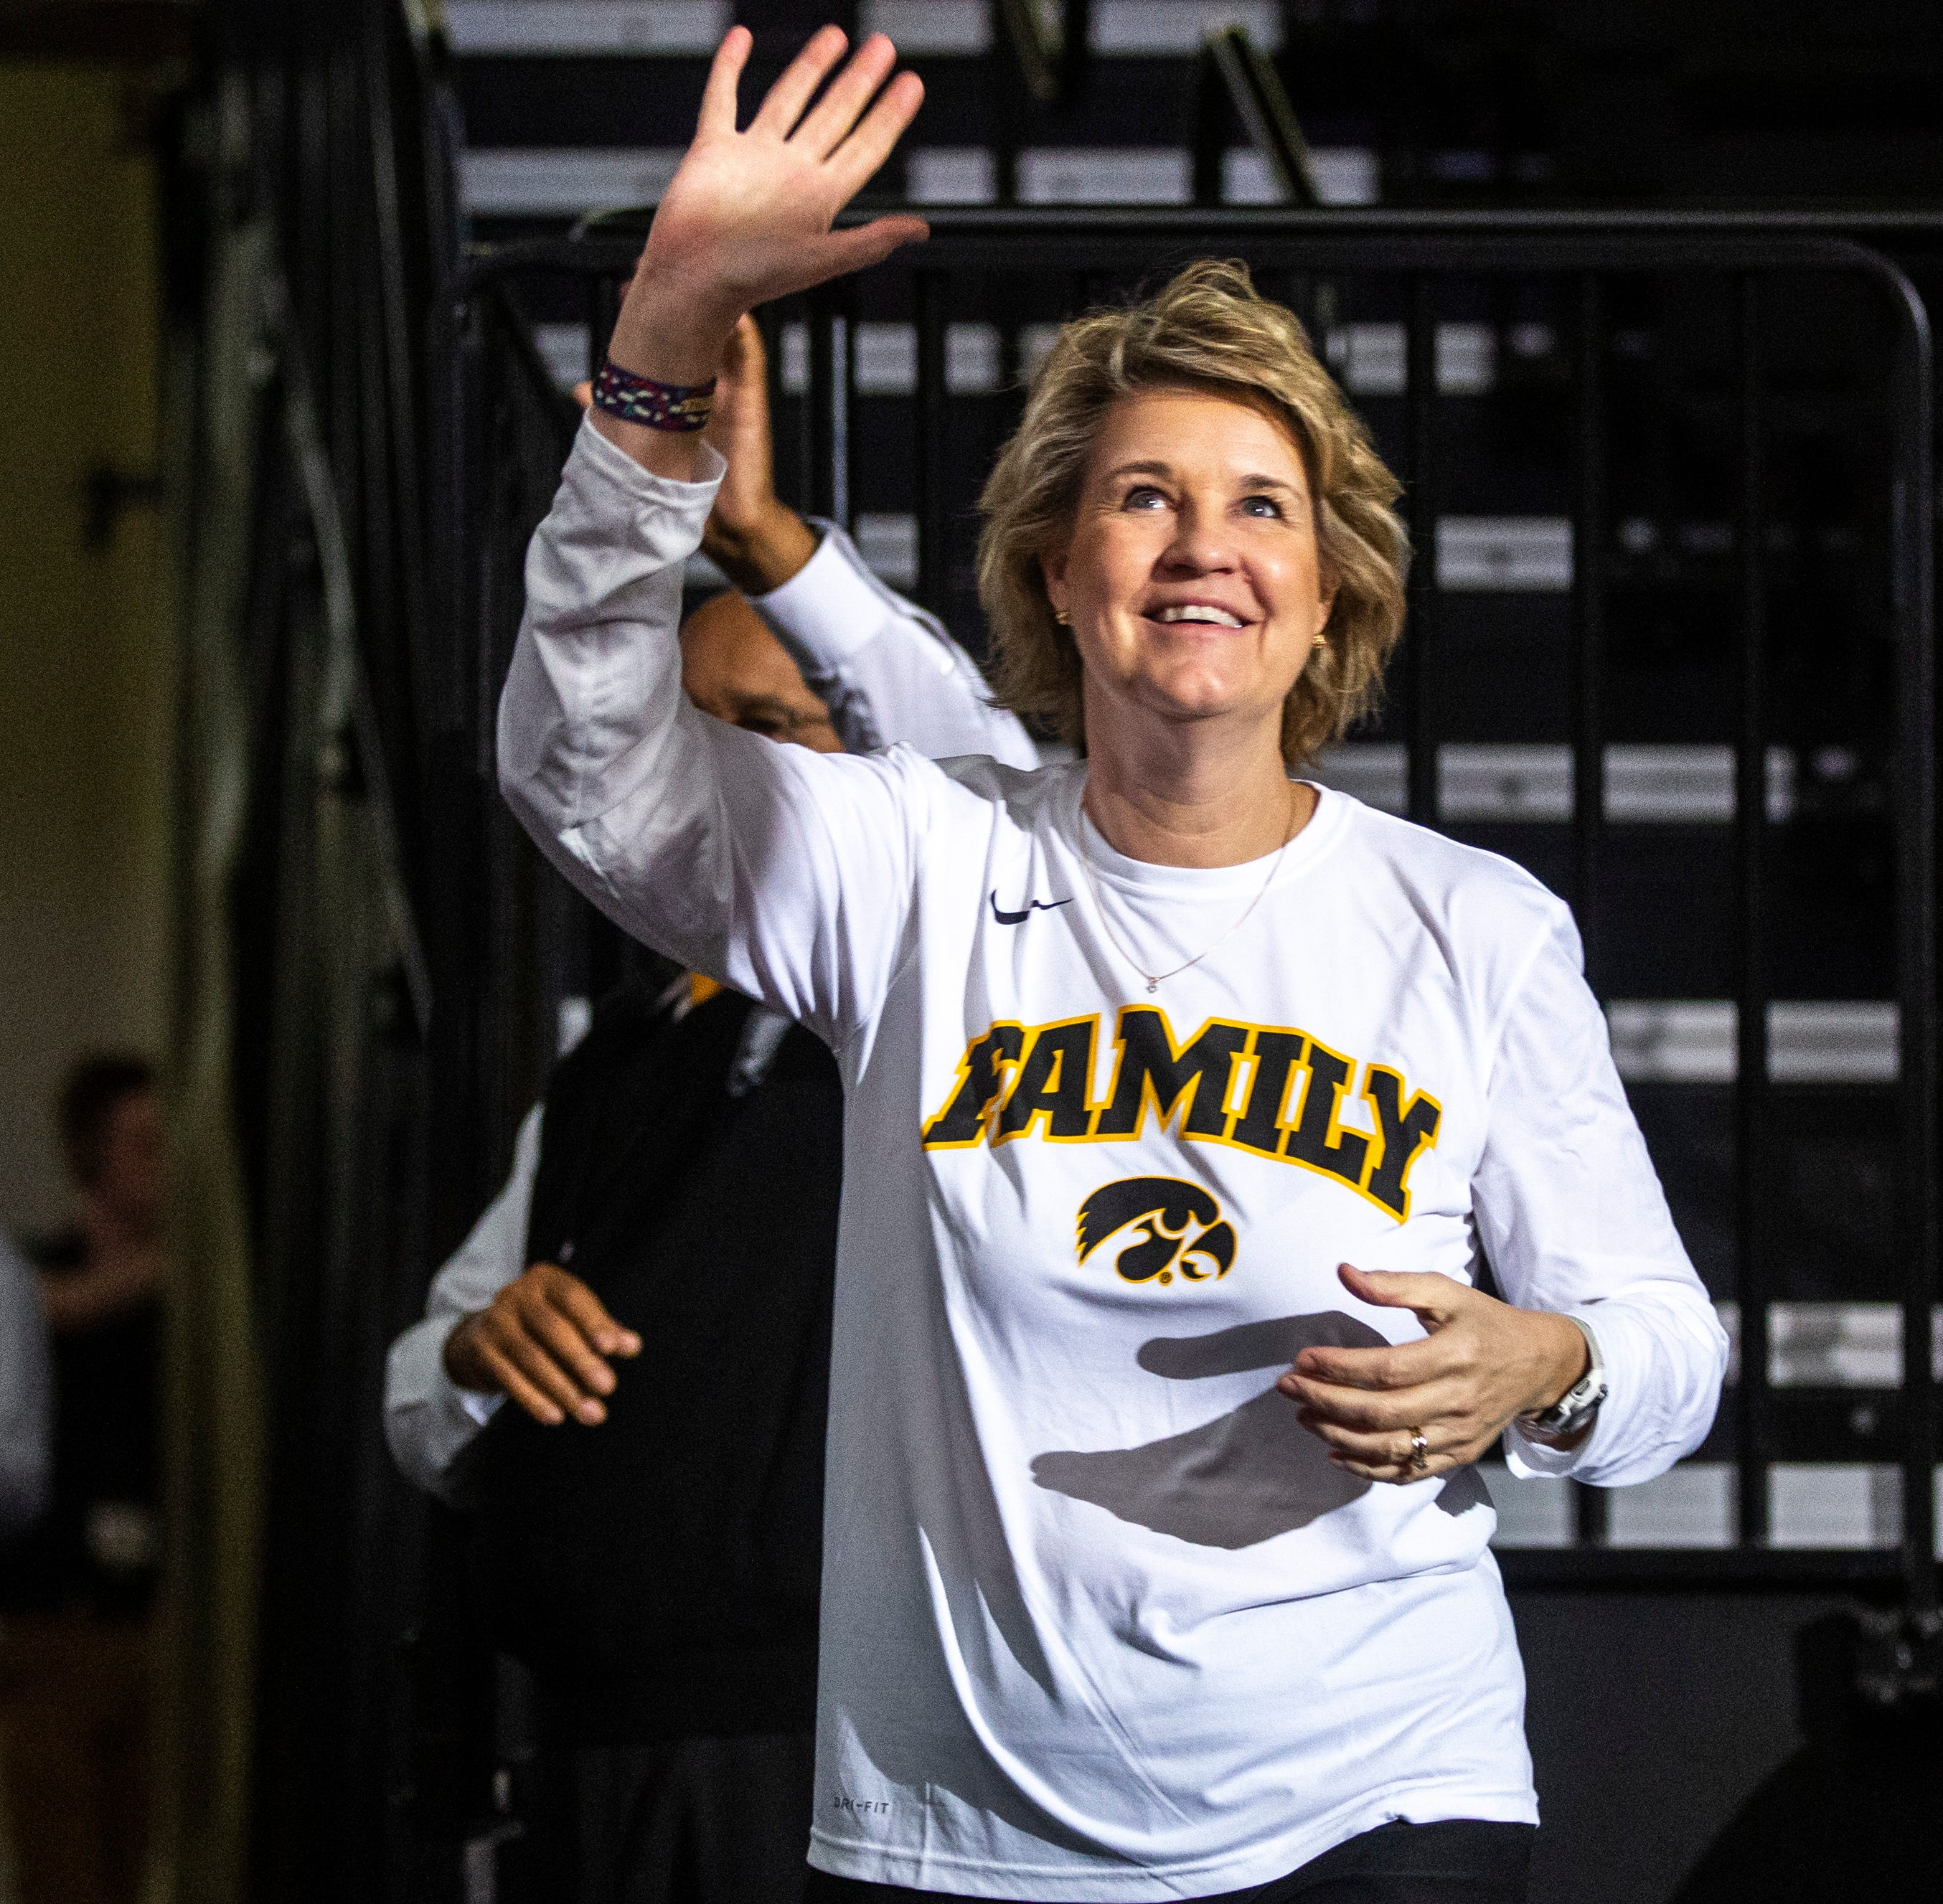 Iowa women's basketball: Home success has Hawkeyes confident ahead of NCAA Tournament